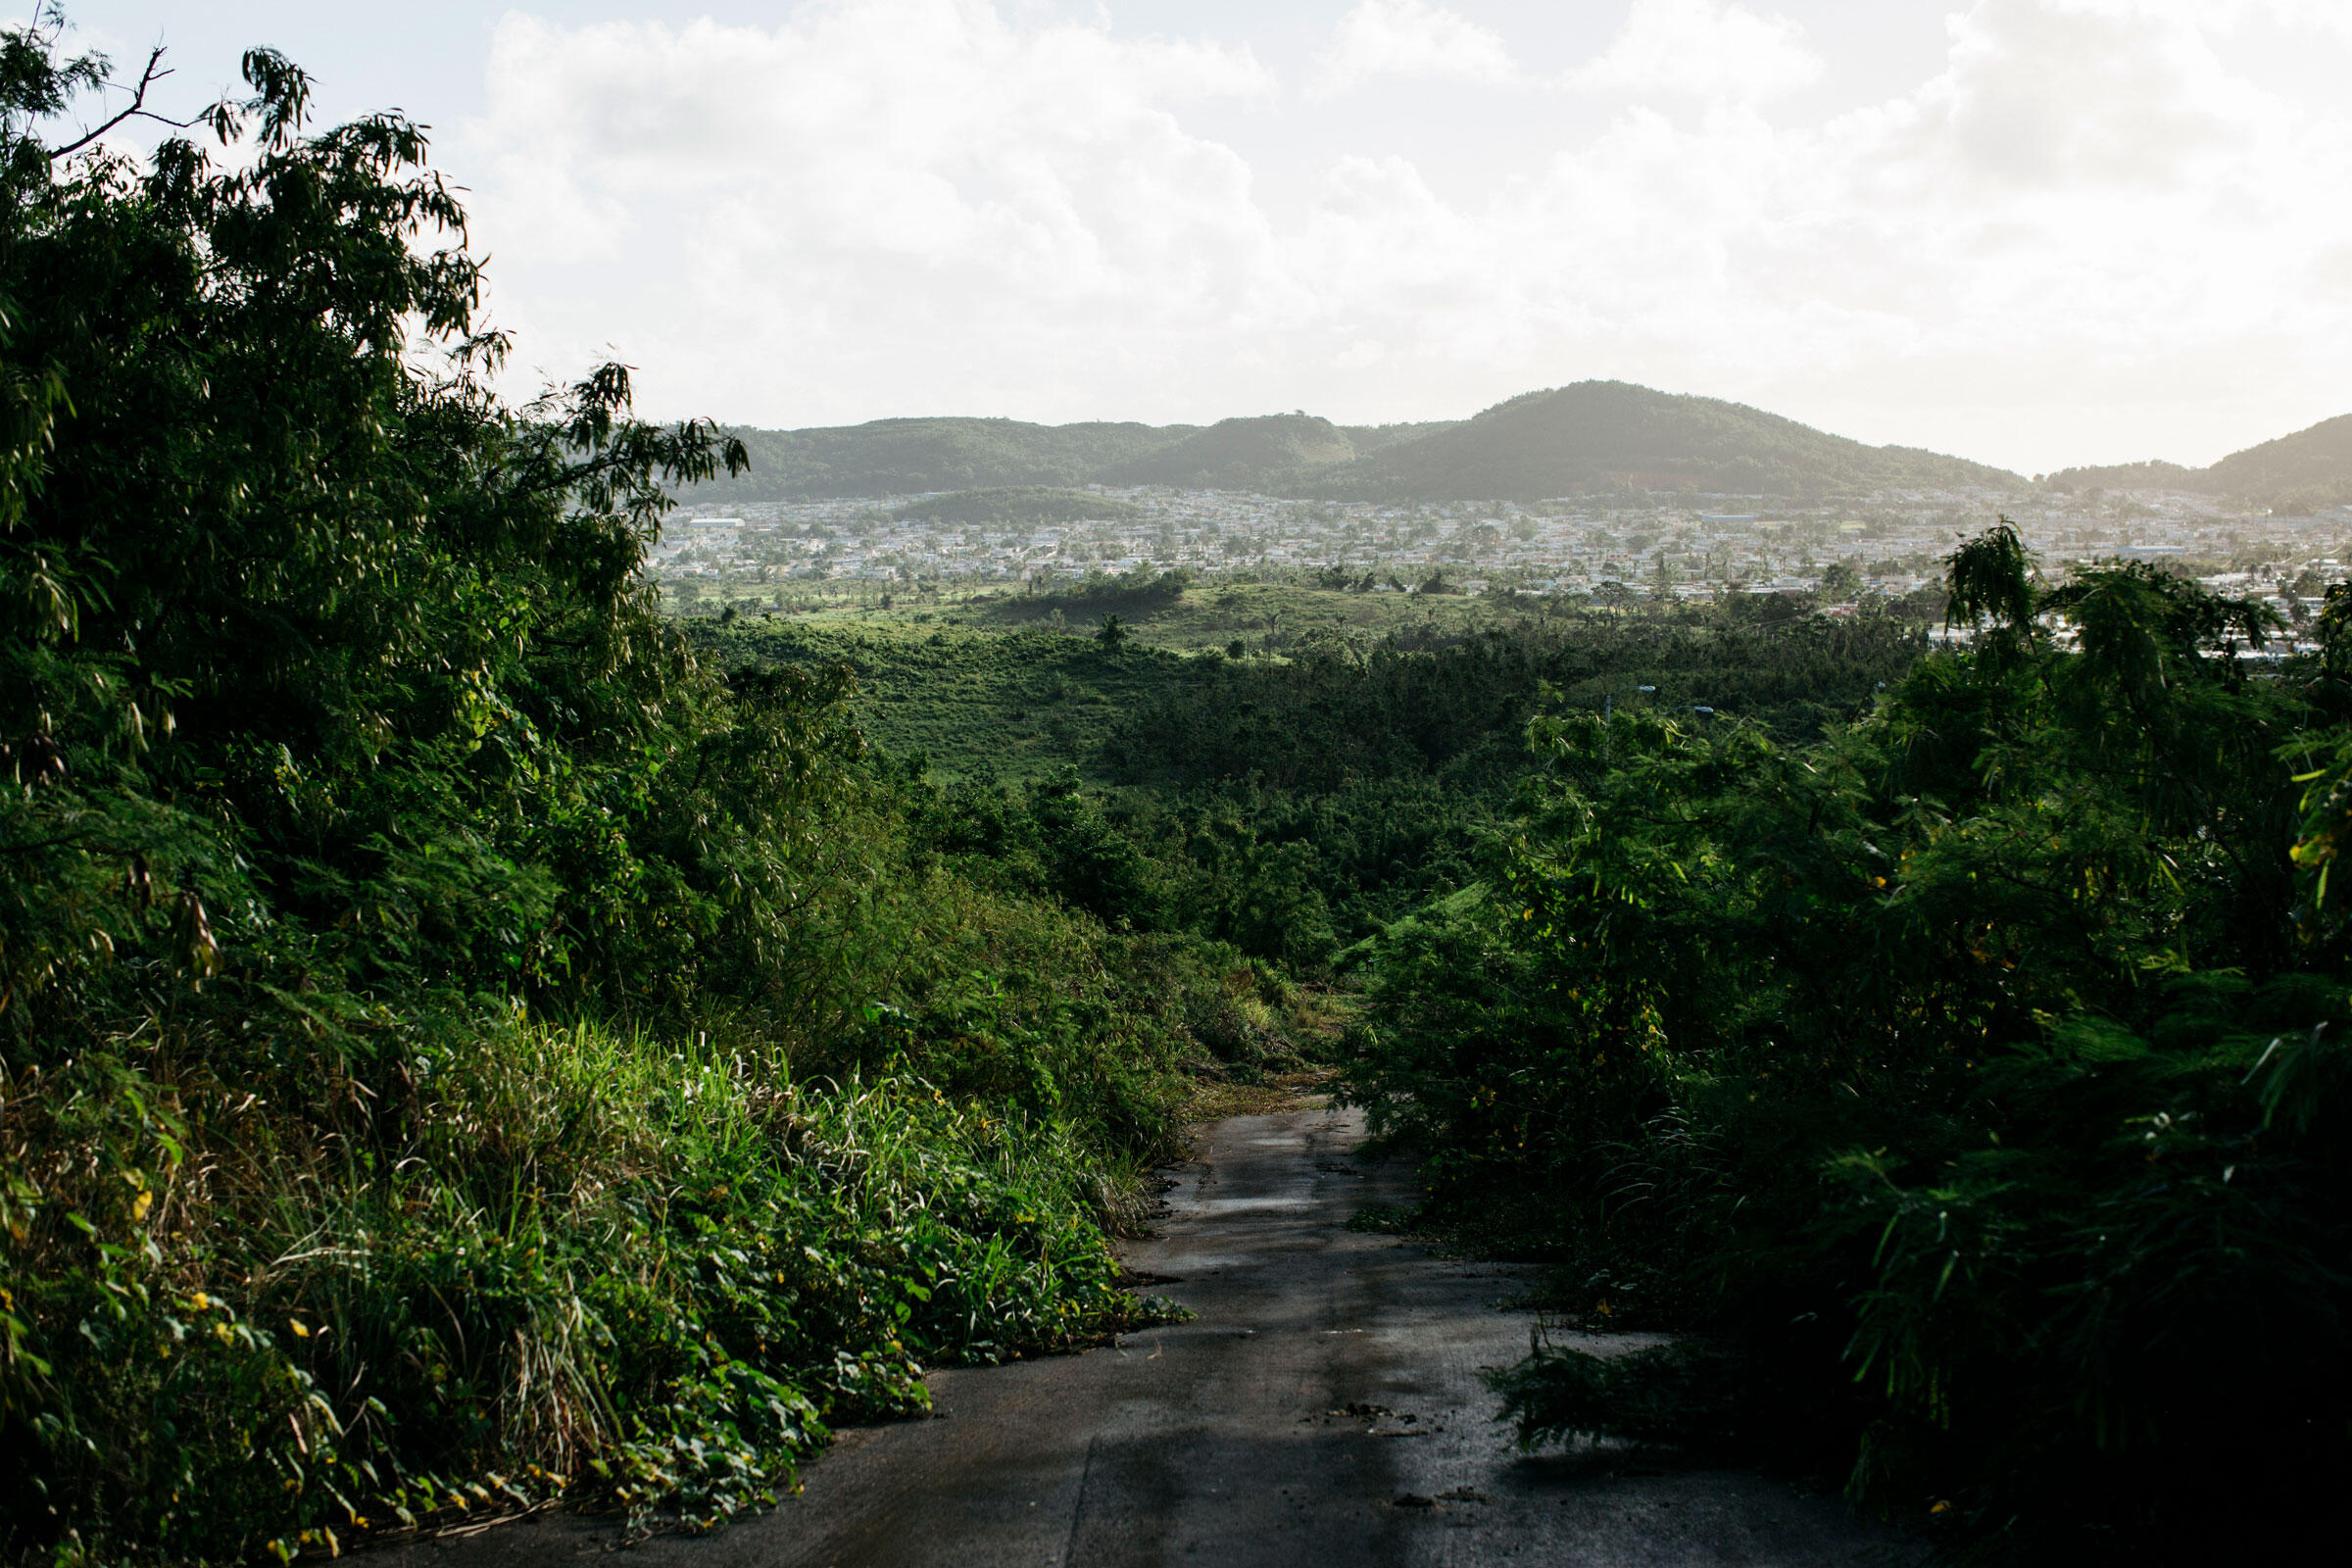 The area around Fajardo, seen in the distance, was hit especially hard by Hurricane Maria. Erika P. Rodriguez